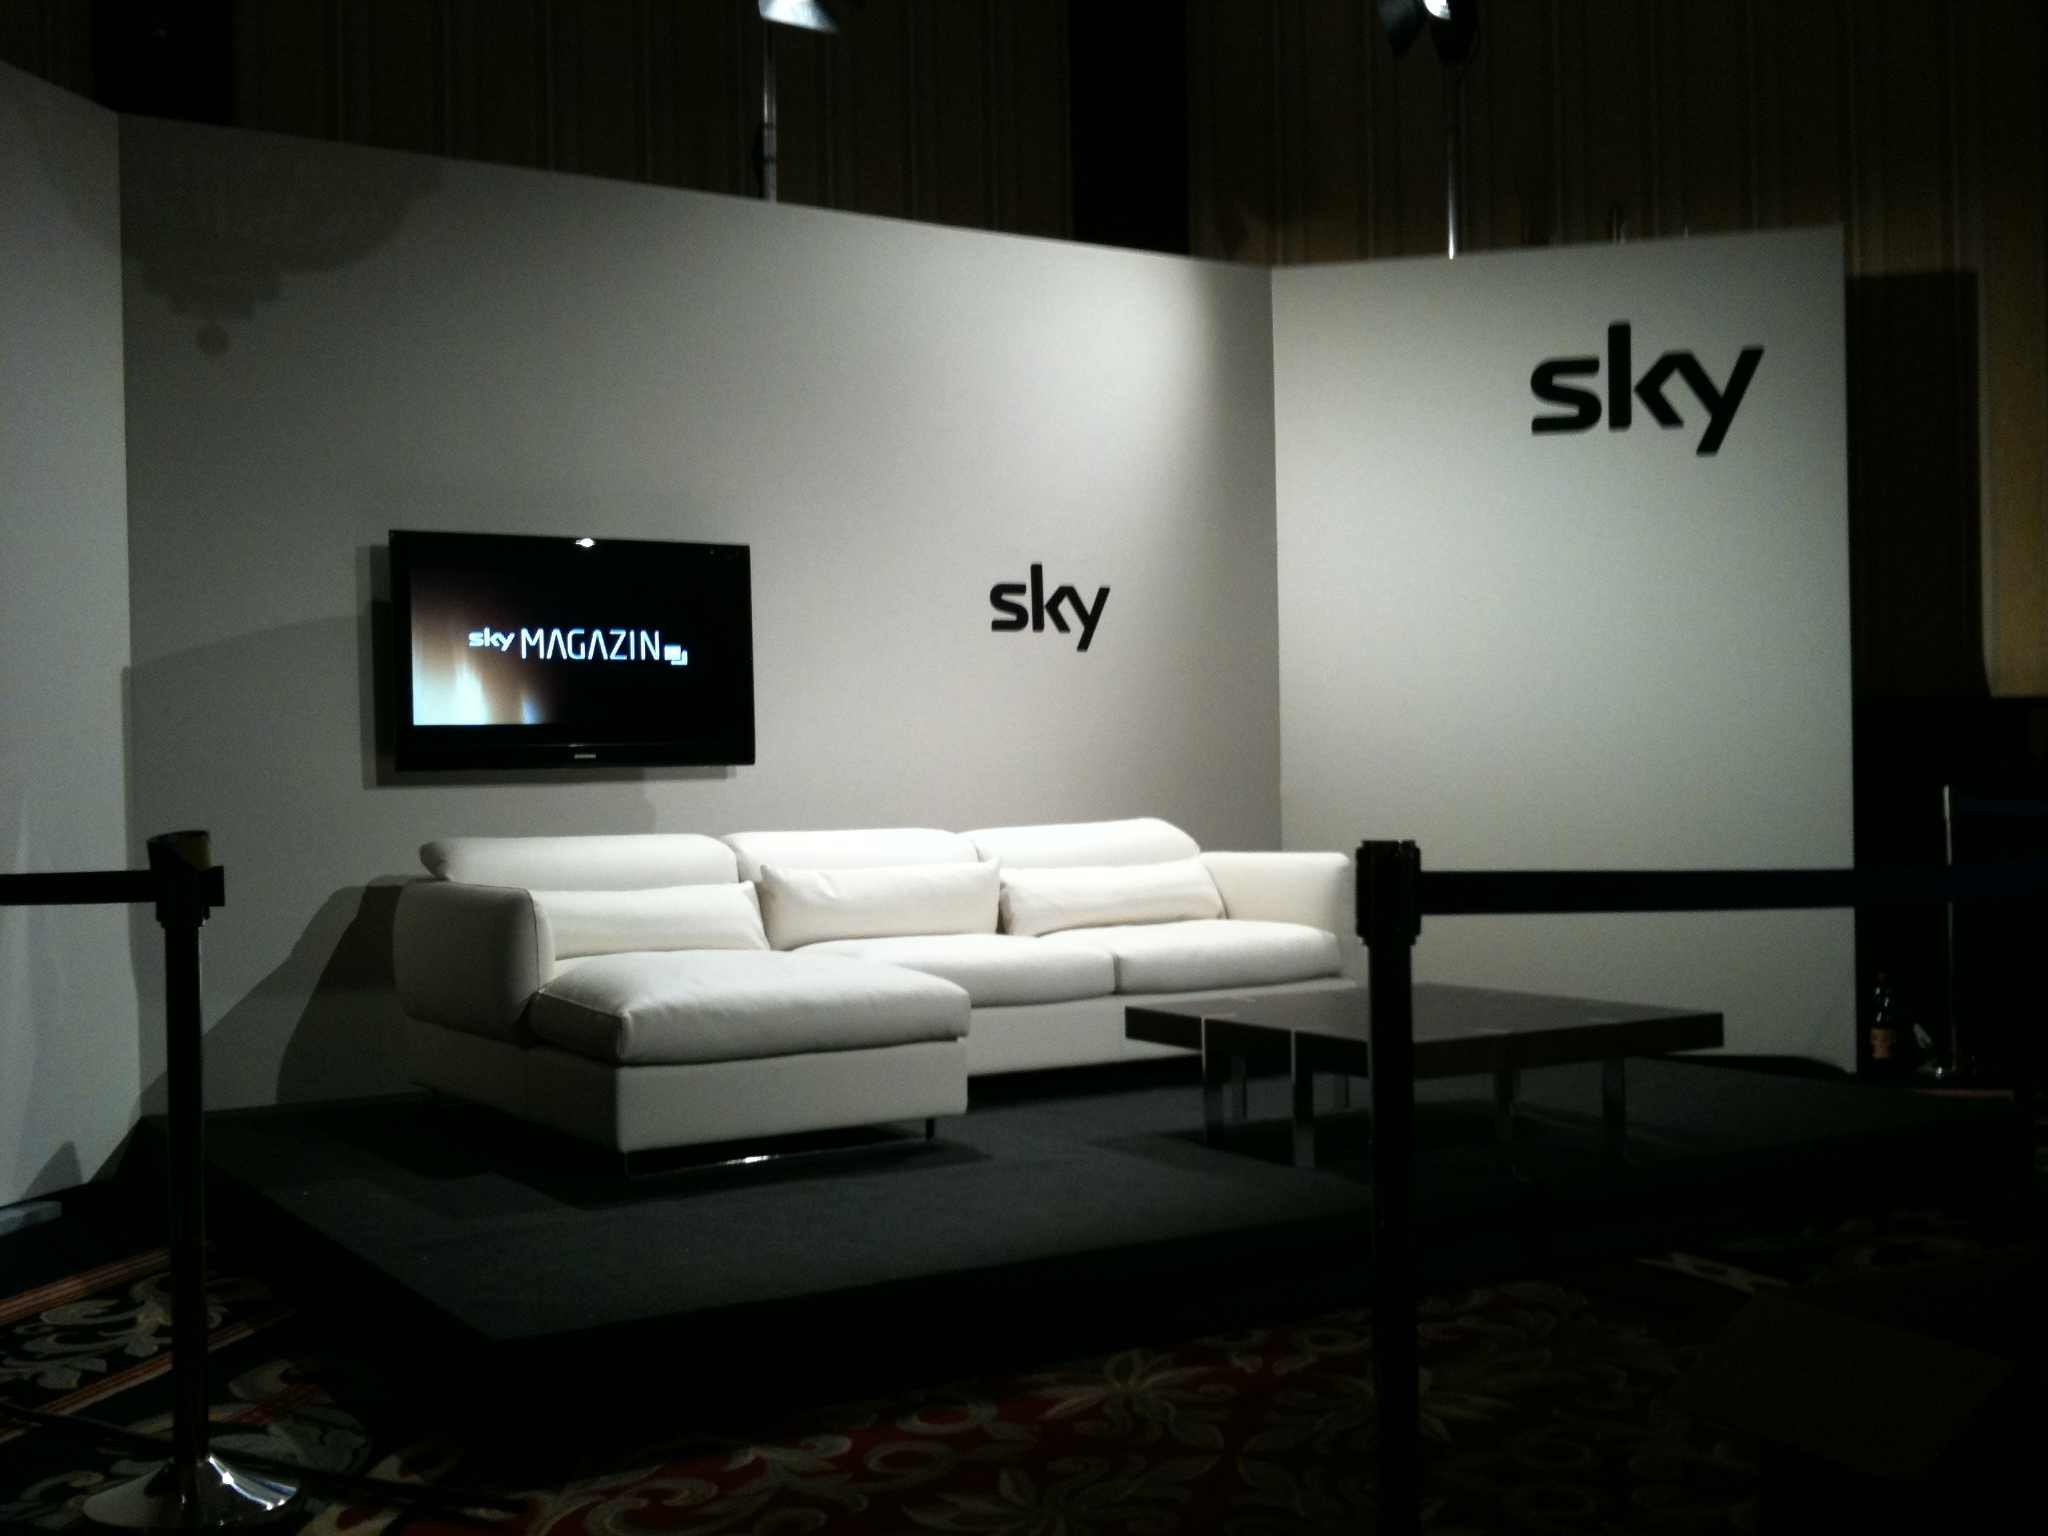 The sky really is the limit for the amazing team at Sky!